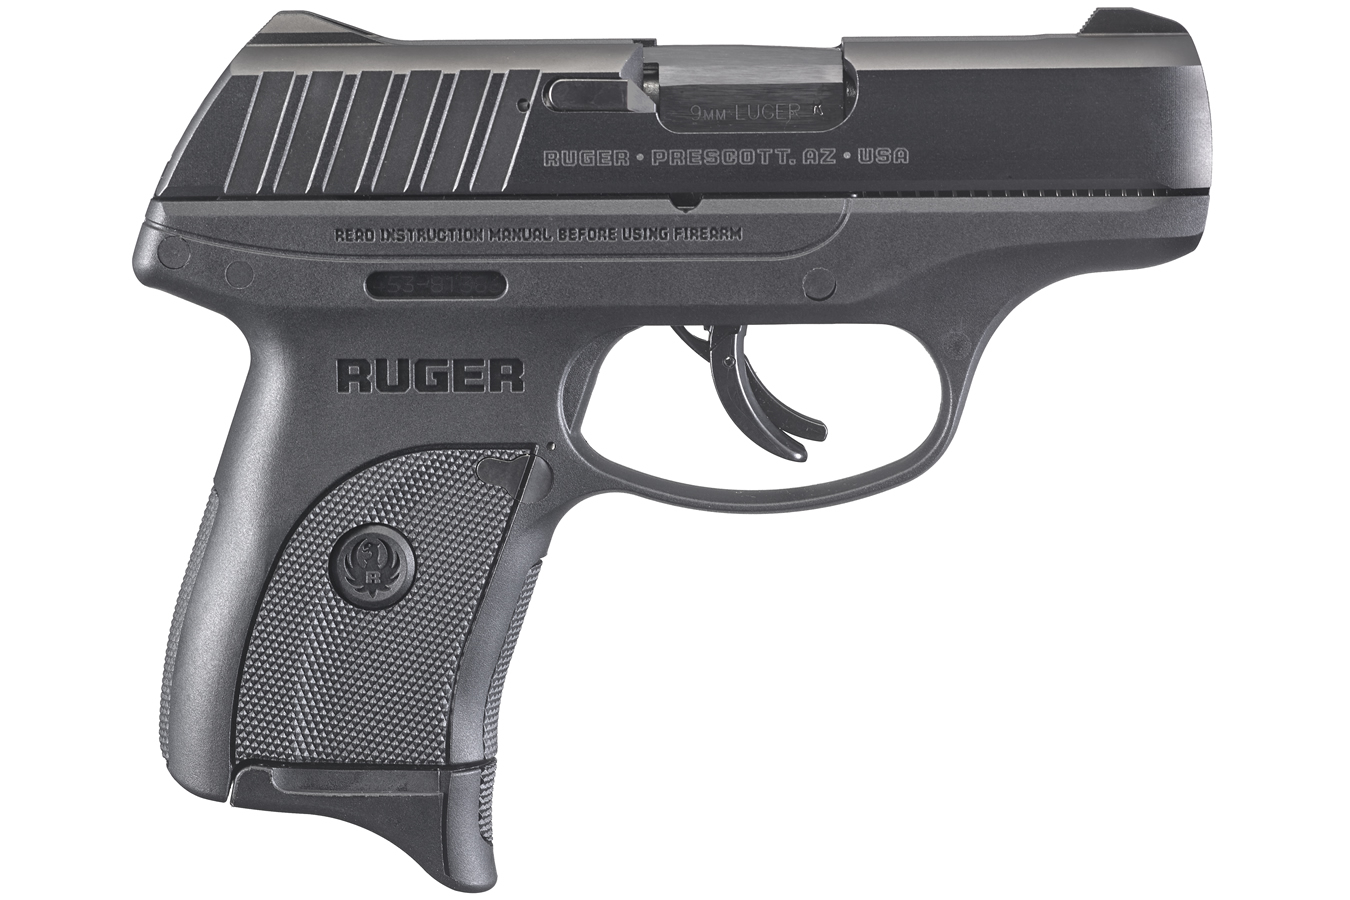 No. 5 Best Selling: RUGER EC9S 9MM STRIKER-FIRED PISTOL